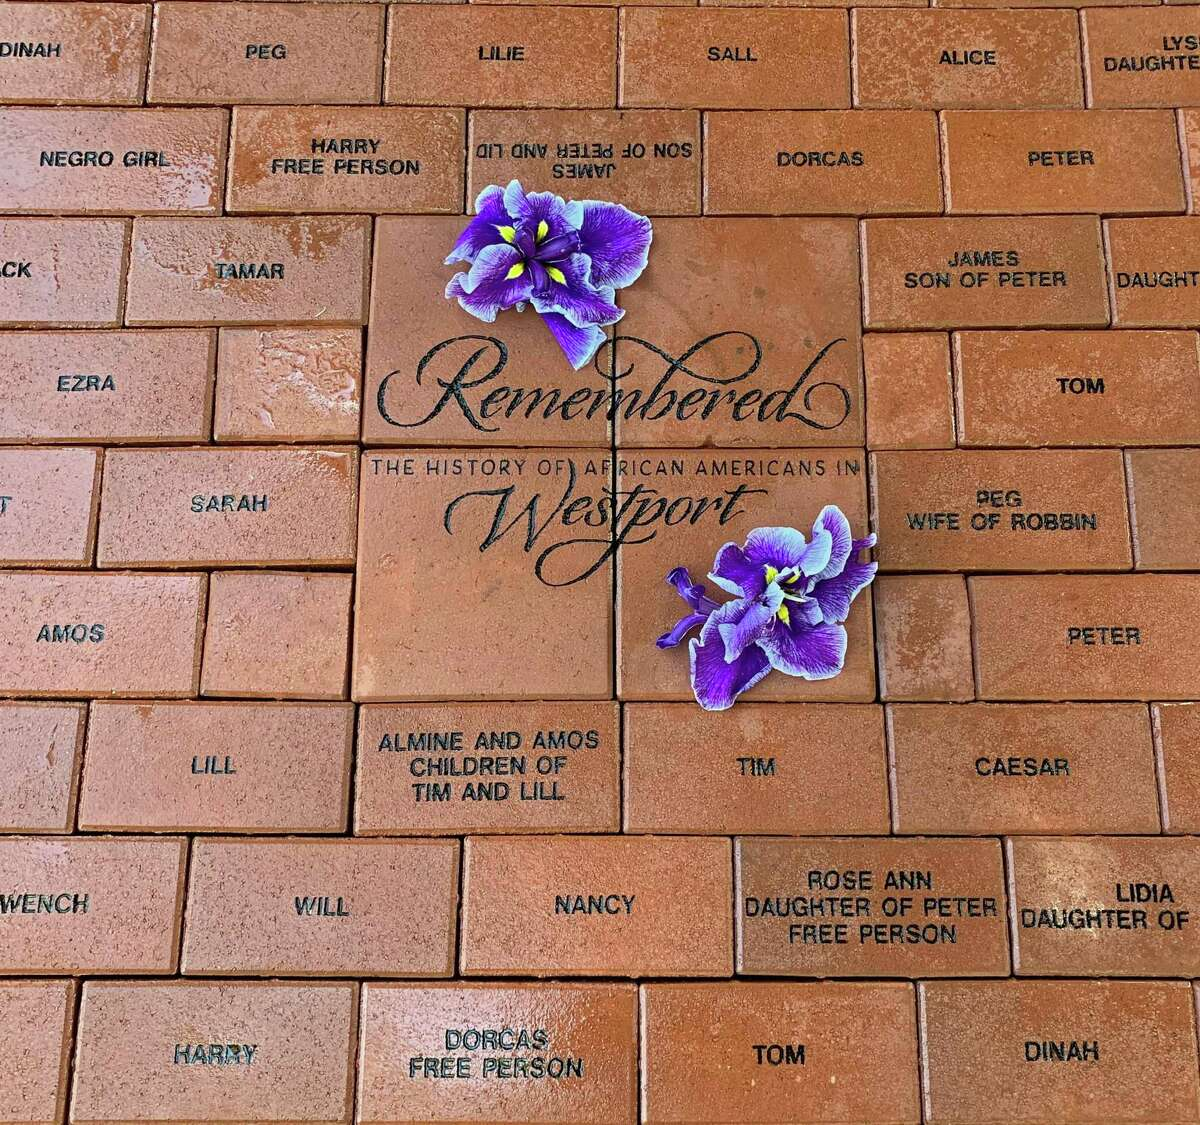 The Westport Historical Society placed bricks displaying the names of enslaved African Americans.